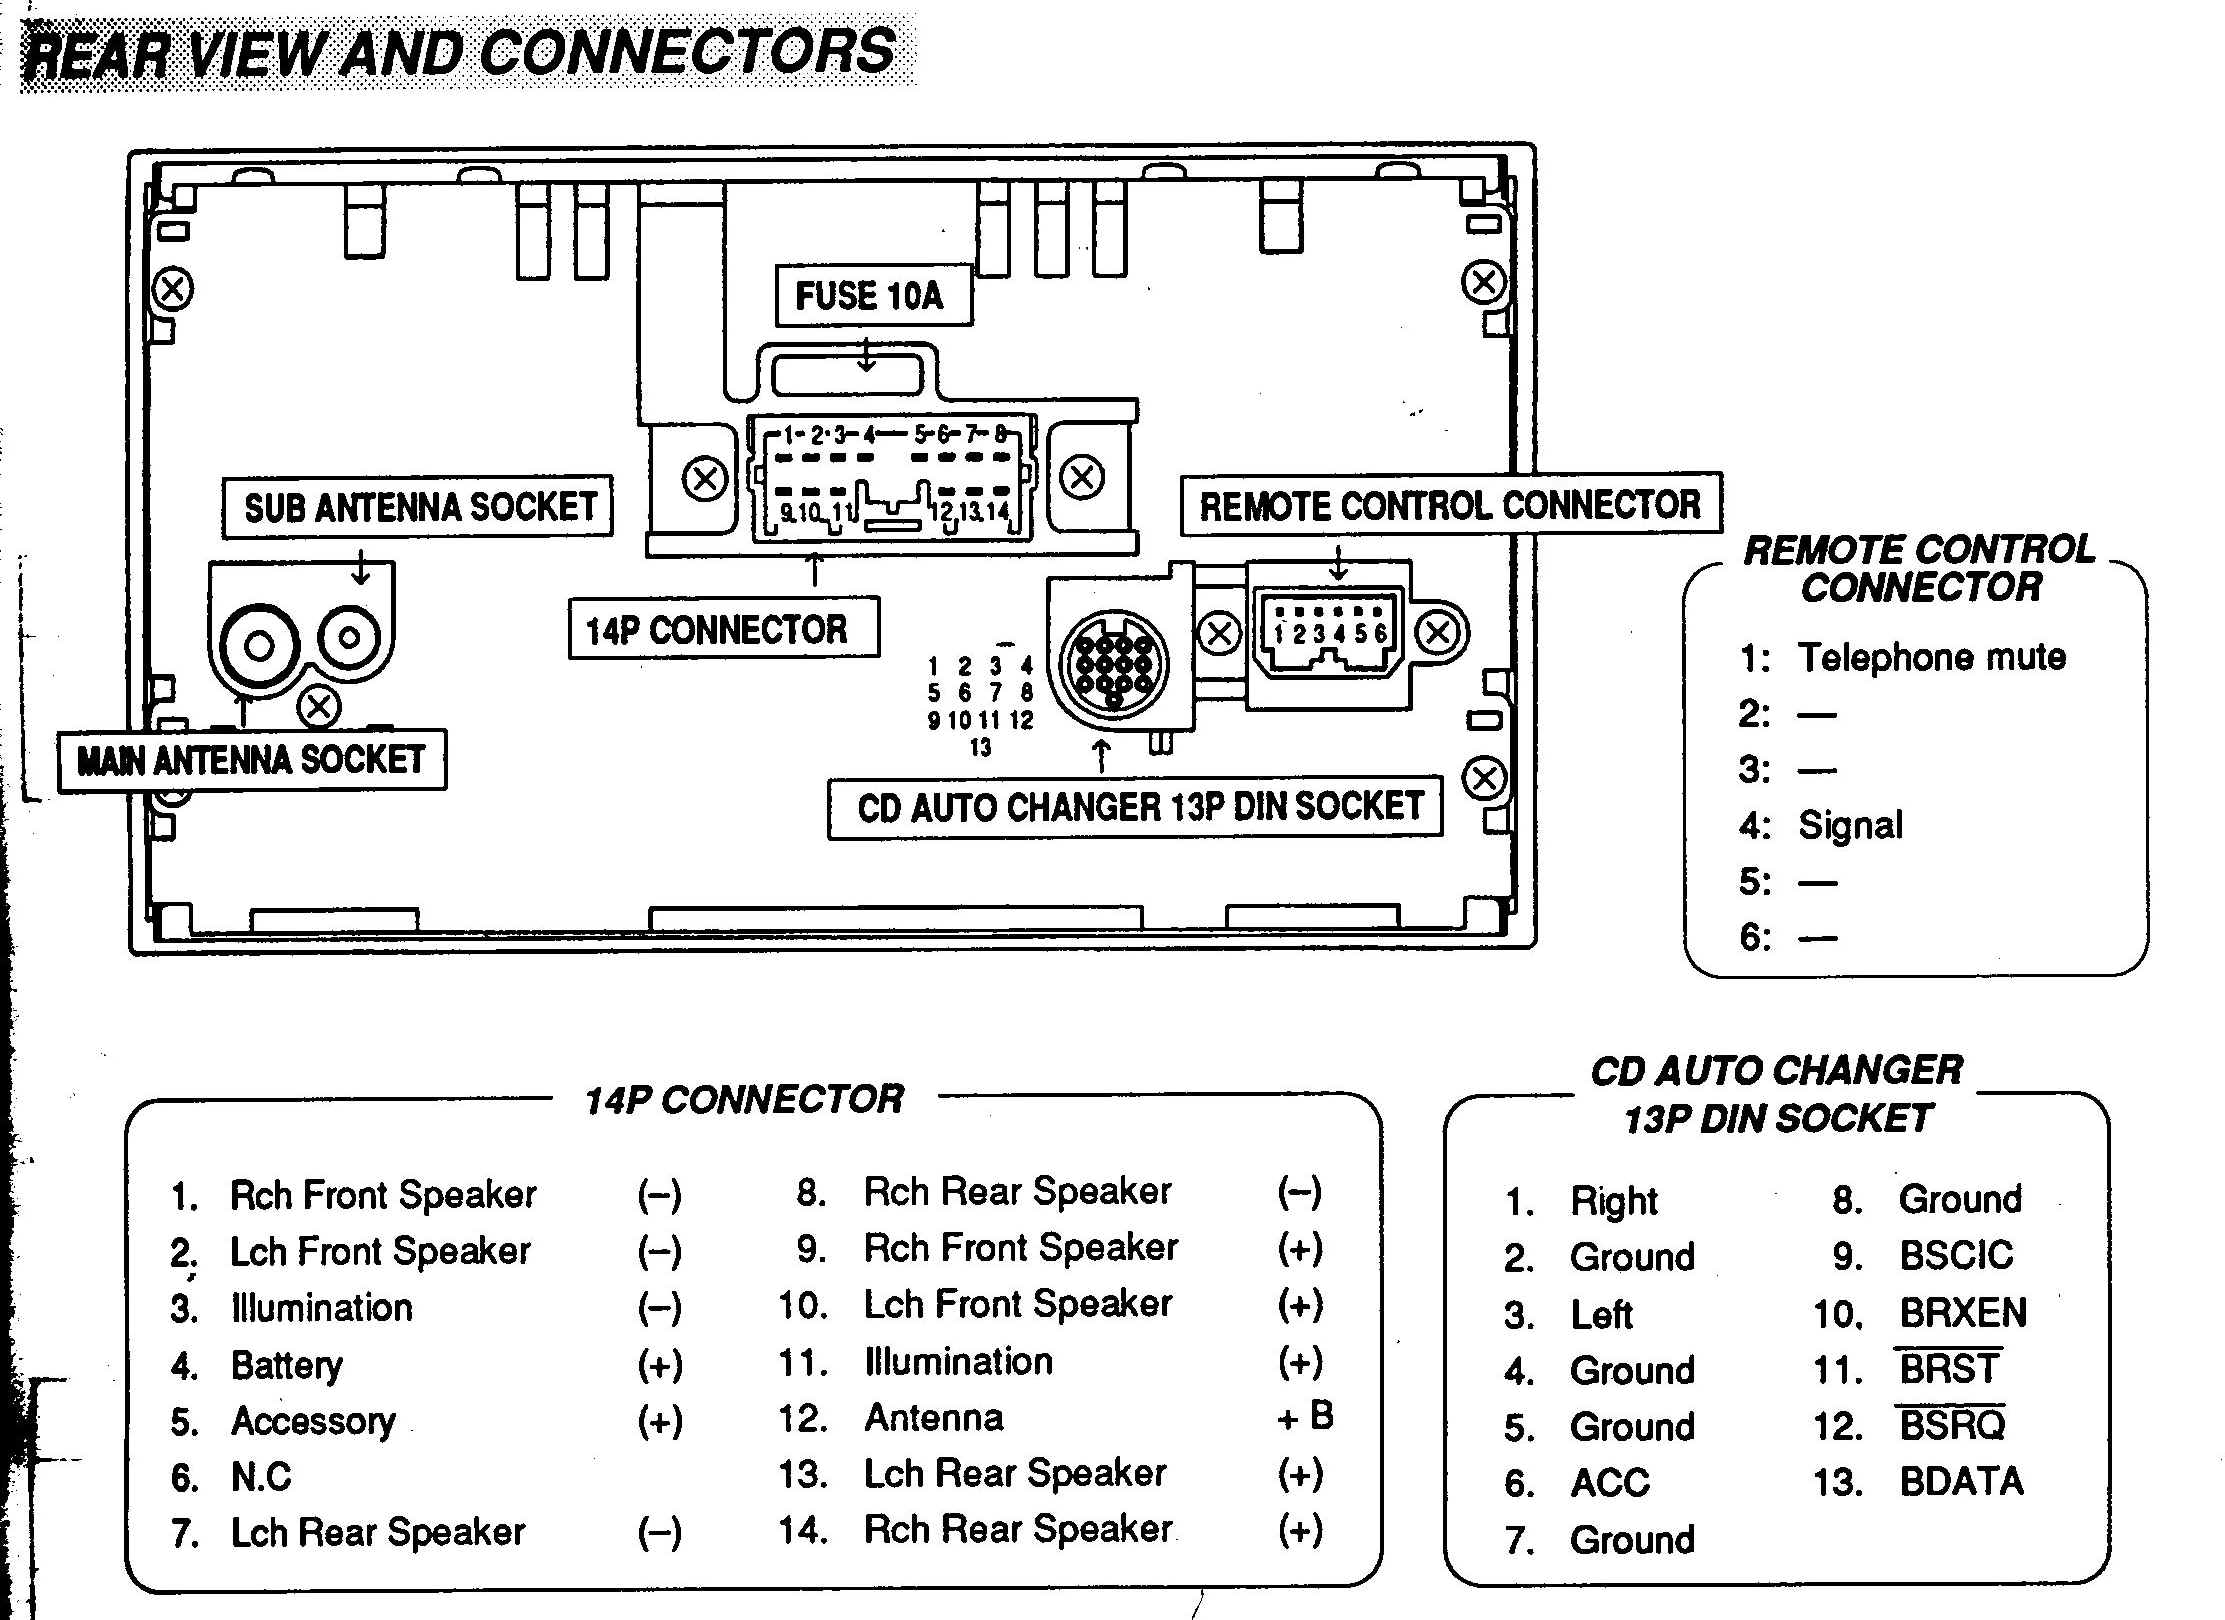 WireHarnessMit121003 car radio wire diagram car wiring diagrams instruction eg civic radio wiring diagram at webbmarketing.co